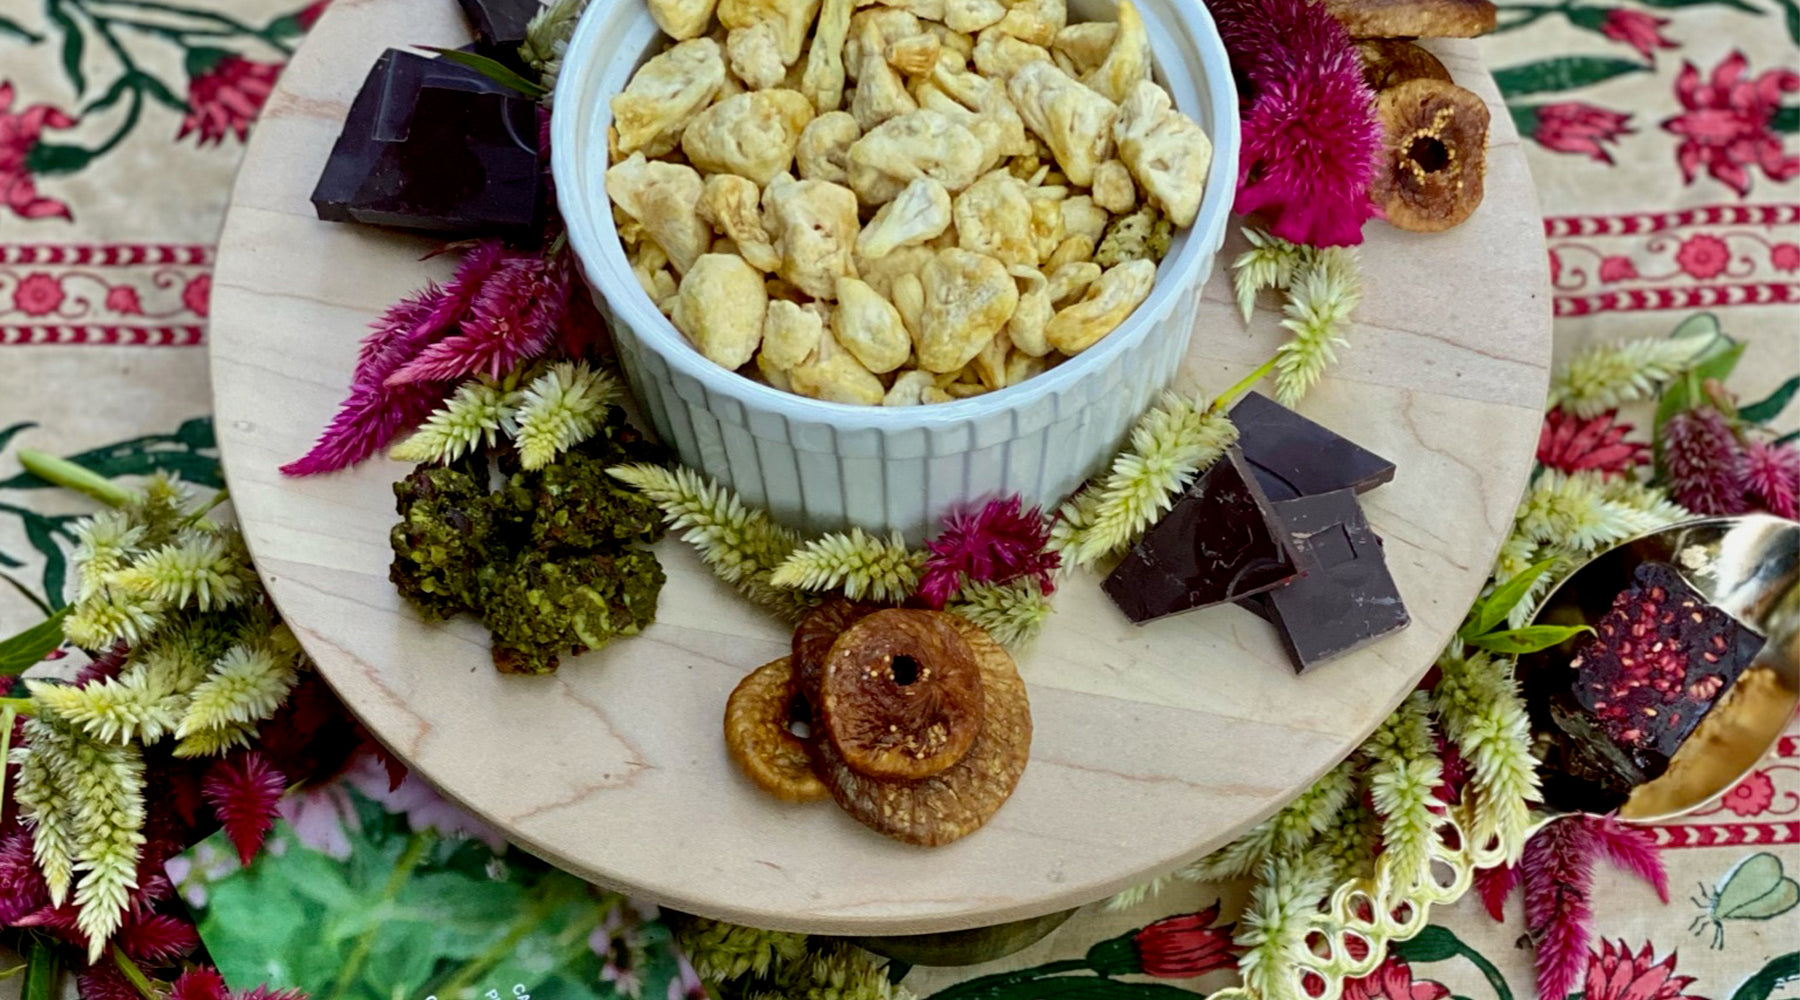 Entertaining Board, woodworking, artisan, artisanal, snacking, decadence, trendy, DADA Daily, chocolate, pistachio milk, figs, cauliflower, elevate your snacking moment, Let Us Entertain You